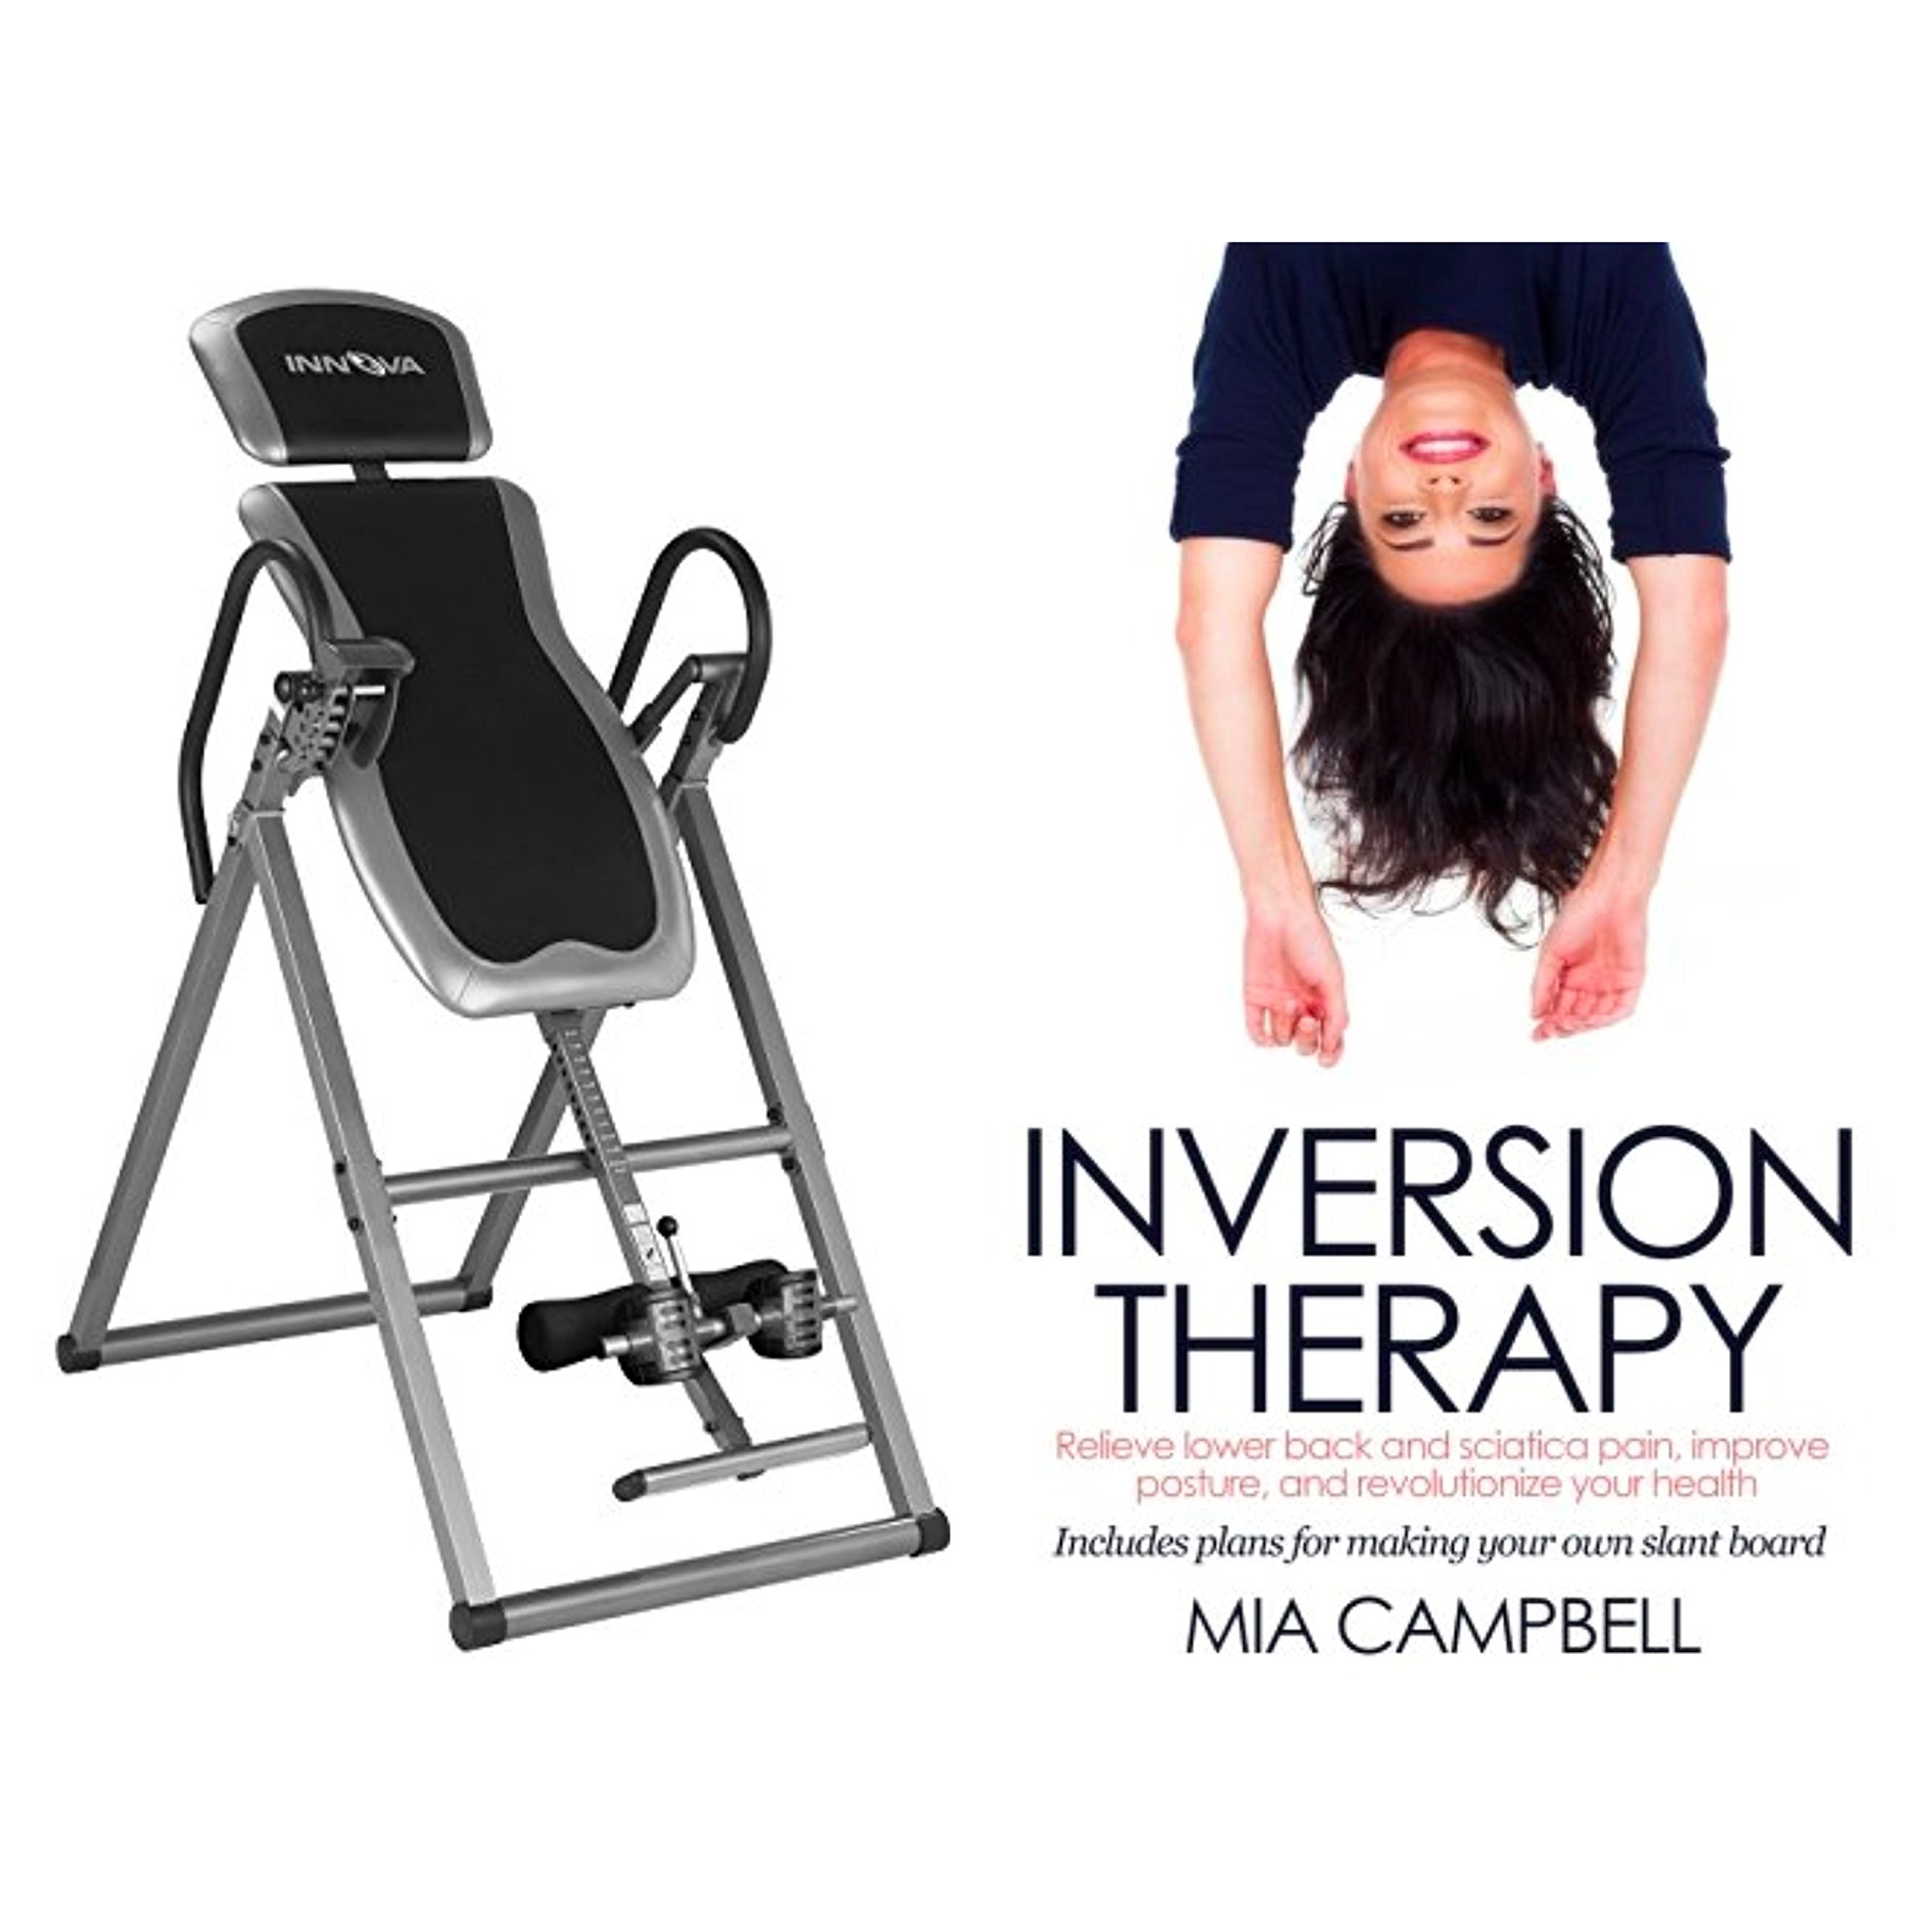 Bundle Includes 2 Items - Innova ITX9600 Heavy Duty Inversion Table and Inversion Therapy: Relieve lower back and sciatica pain, improve posture, and revolutionize your health